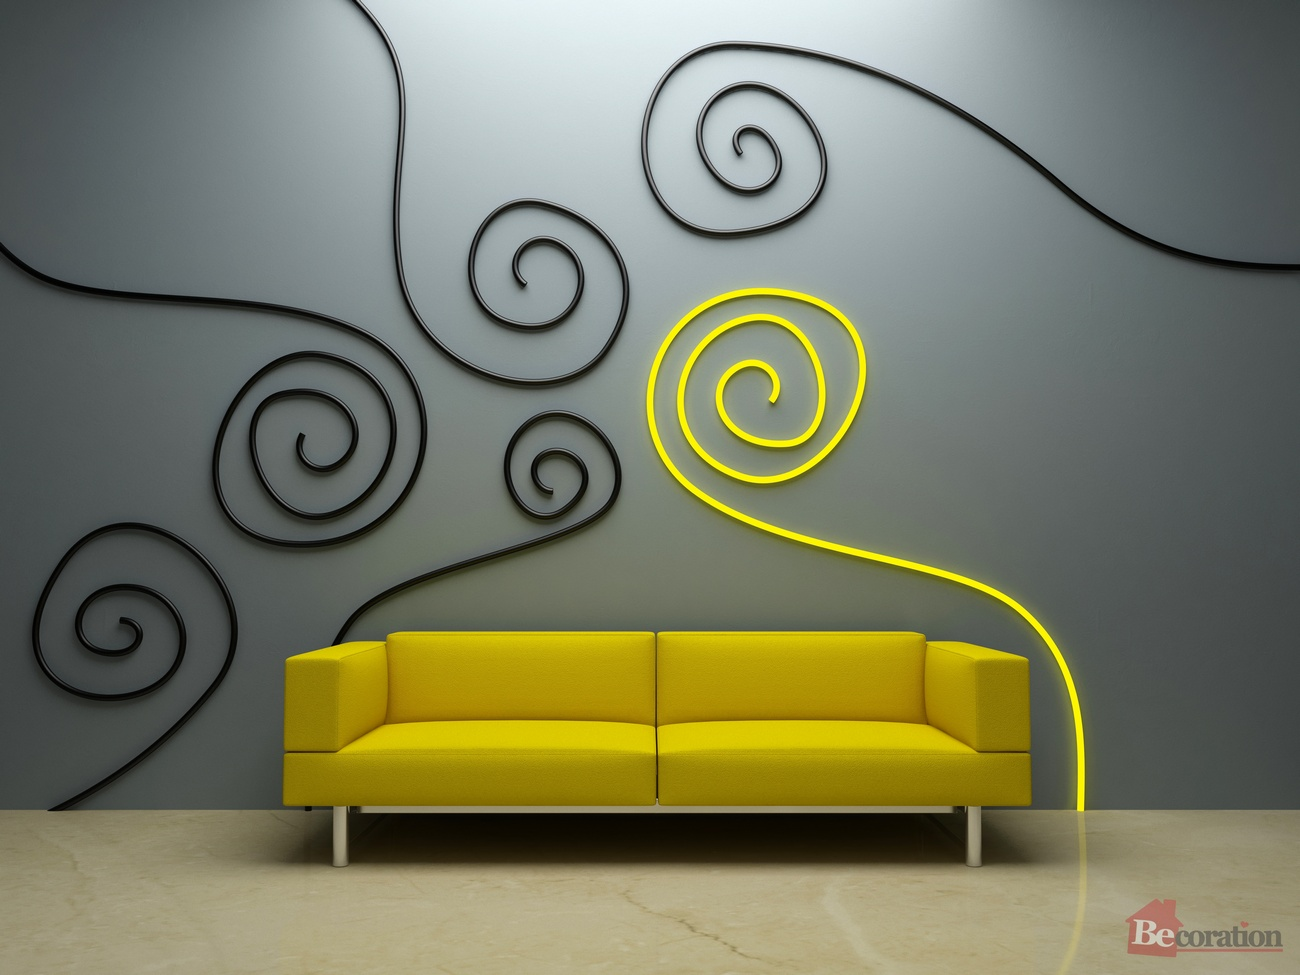 Beautiful waiting room ideas becoration - Yellow accents in interior design ...